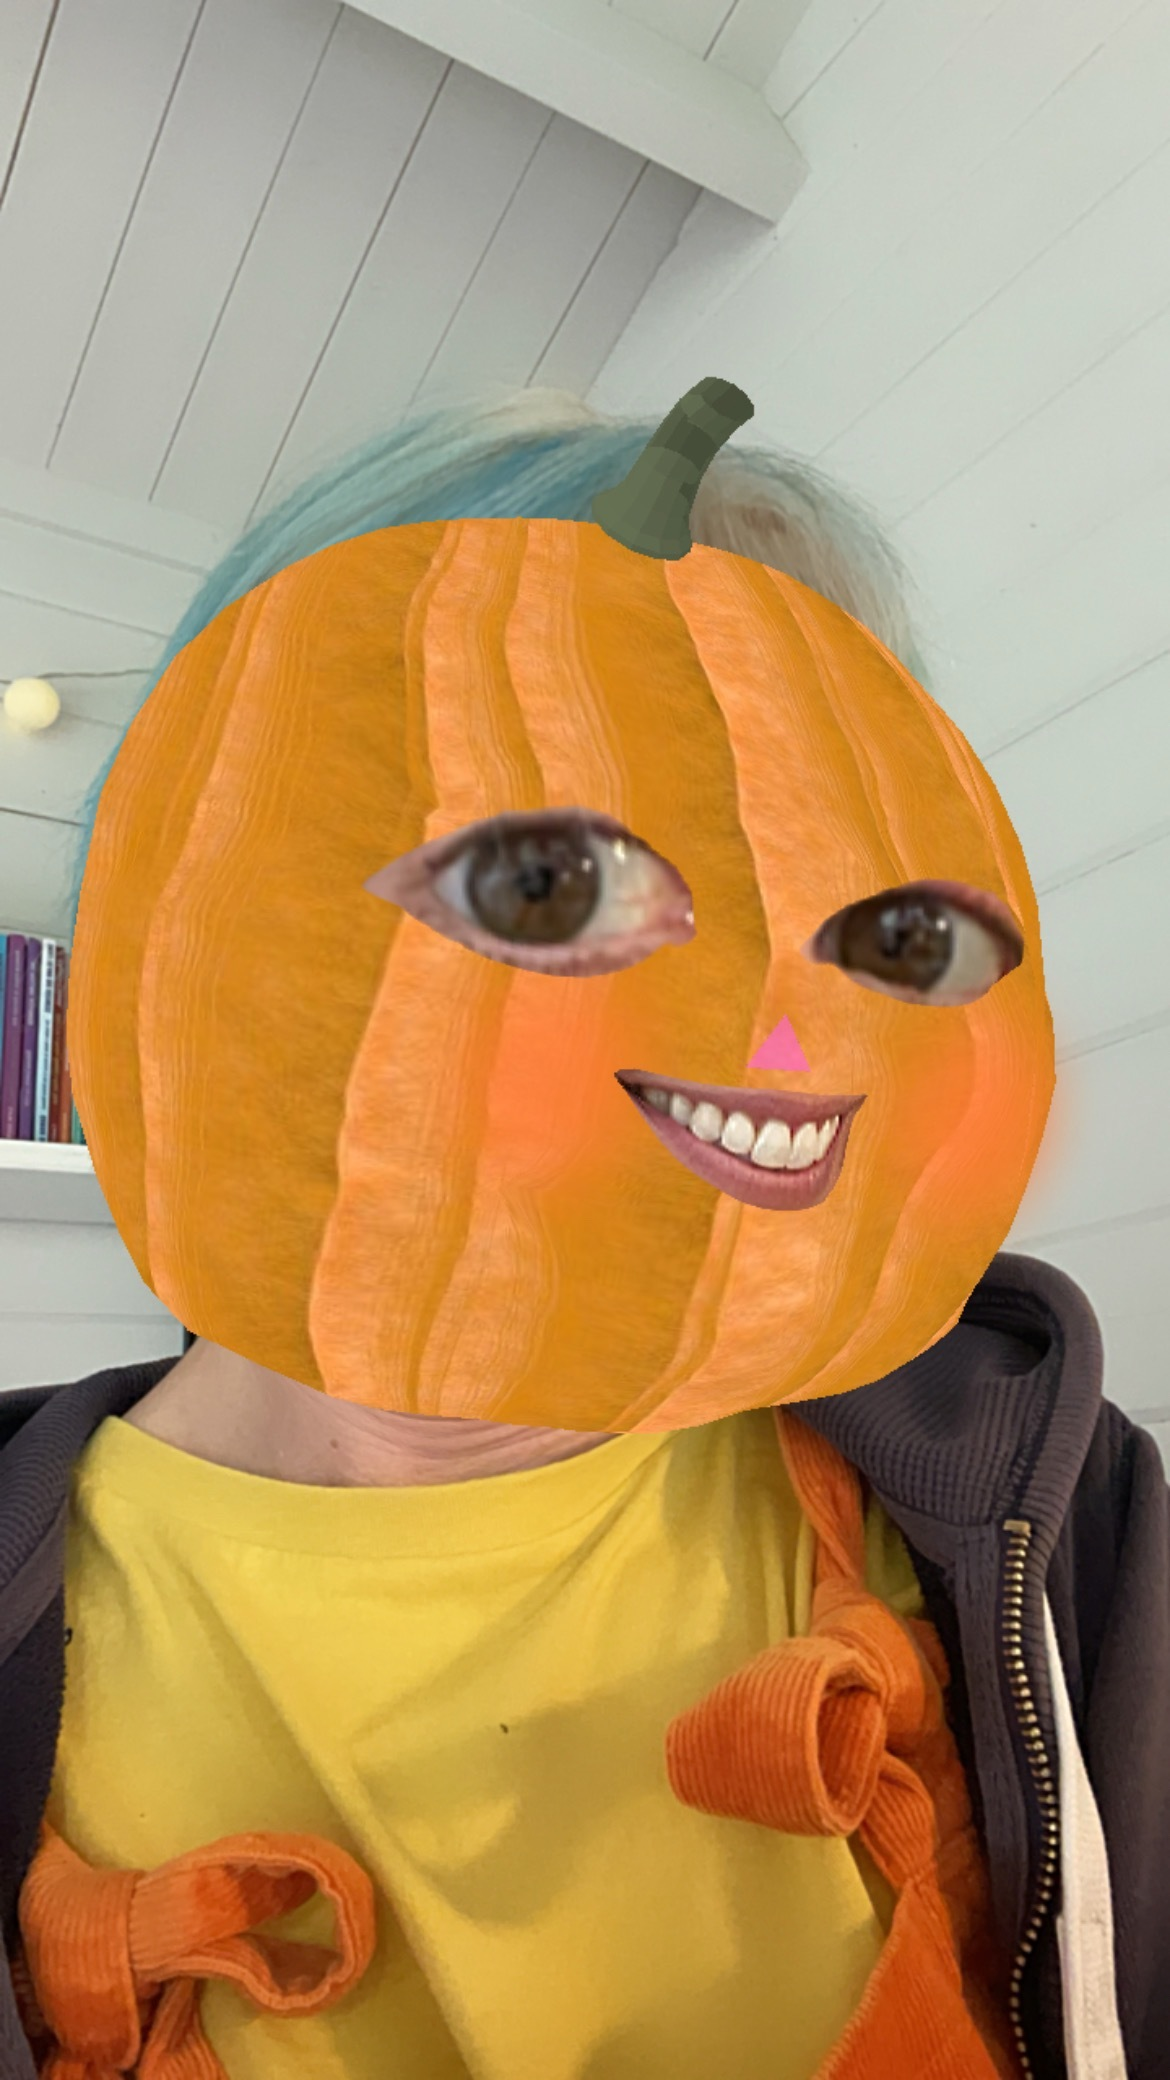 Vicky has a pumpkin head filter, yellow tshirt and orange dungarees